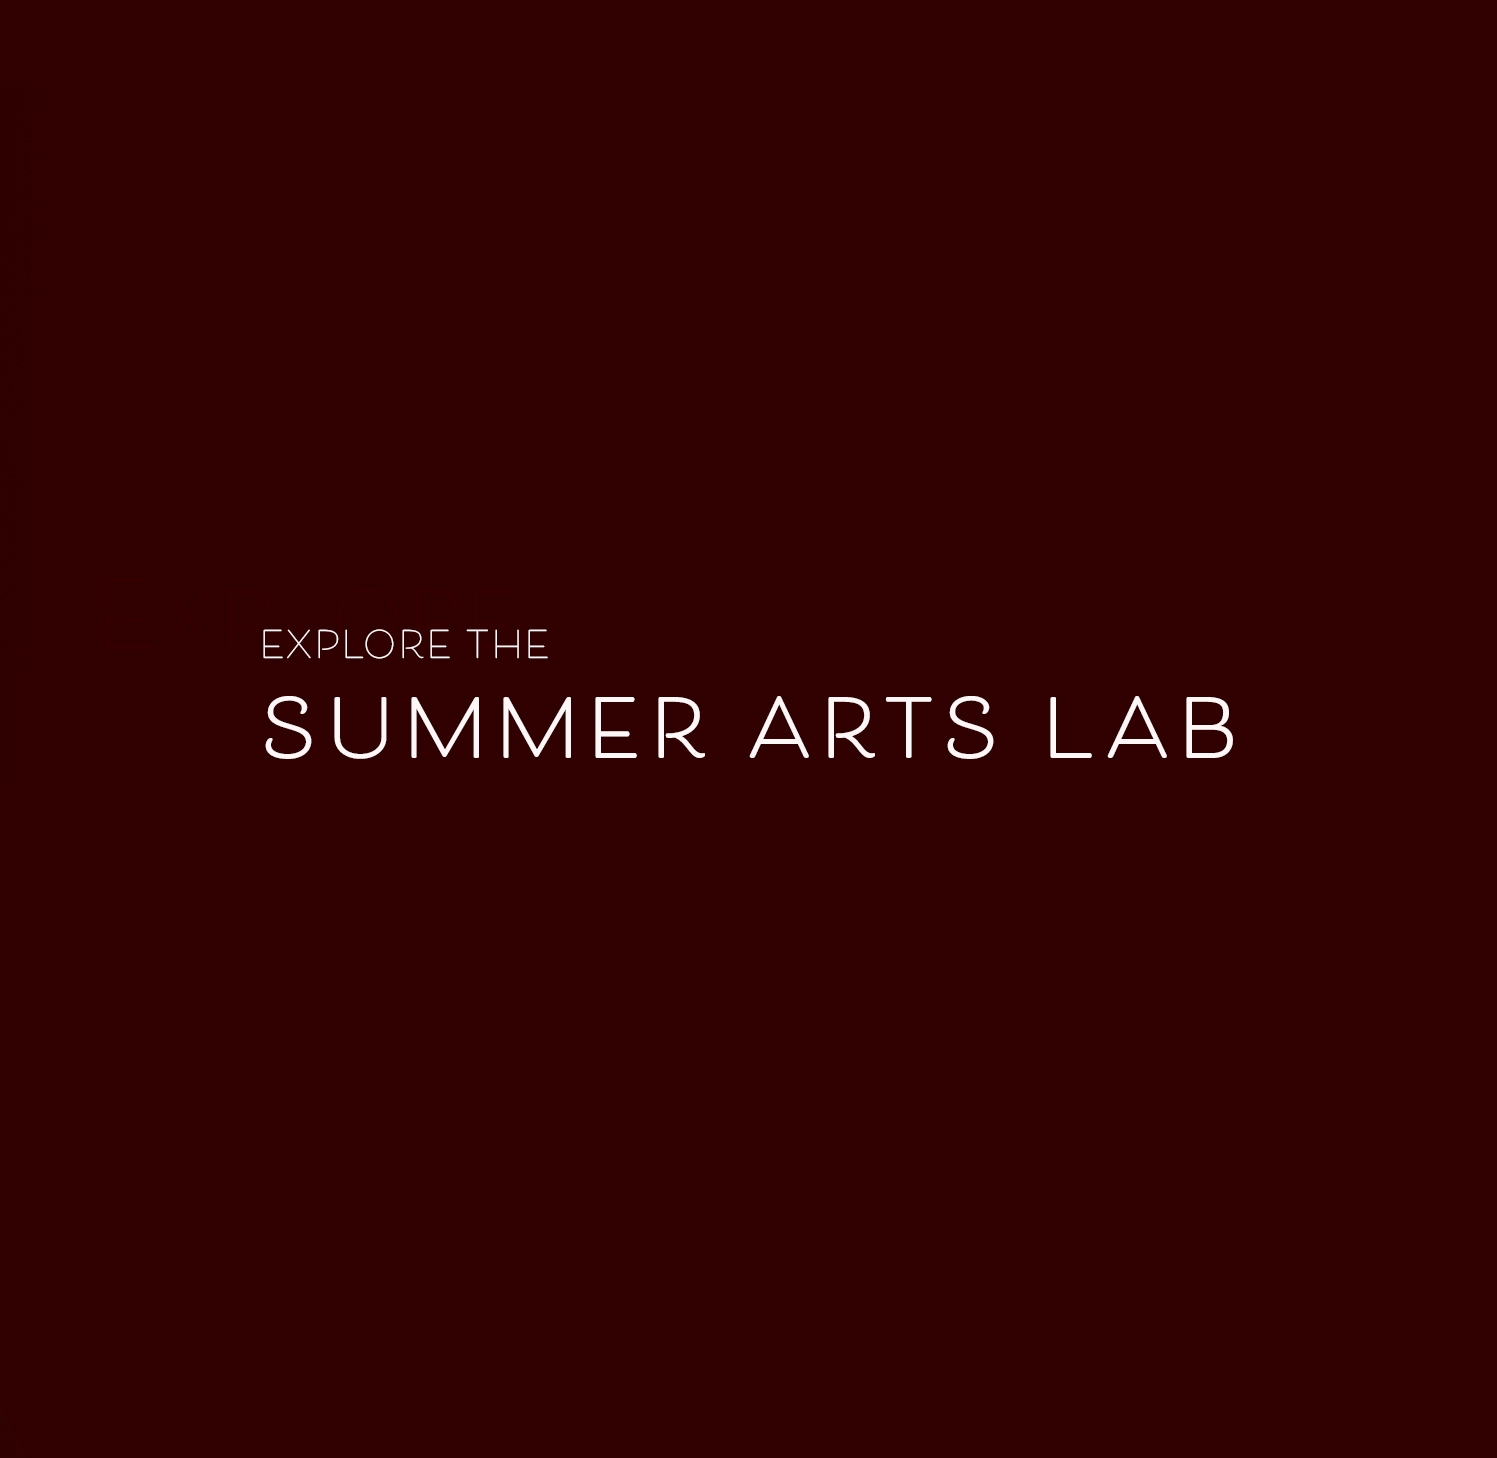 summer arts lab button.jpg